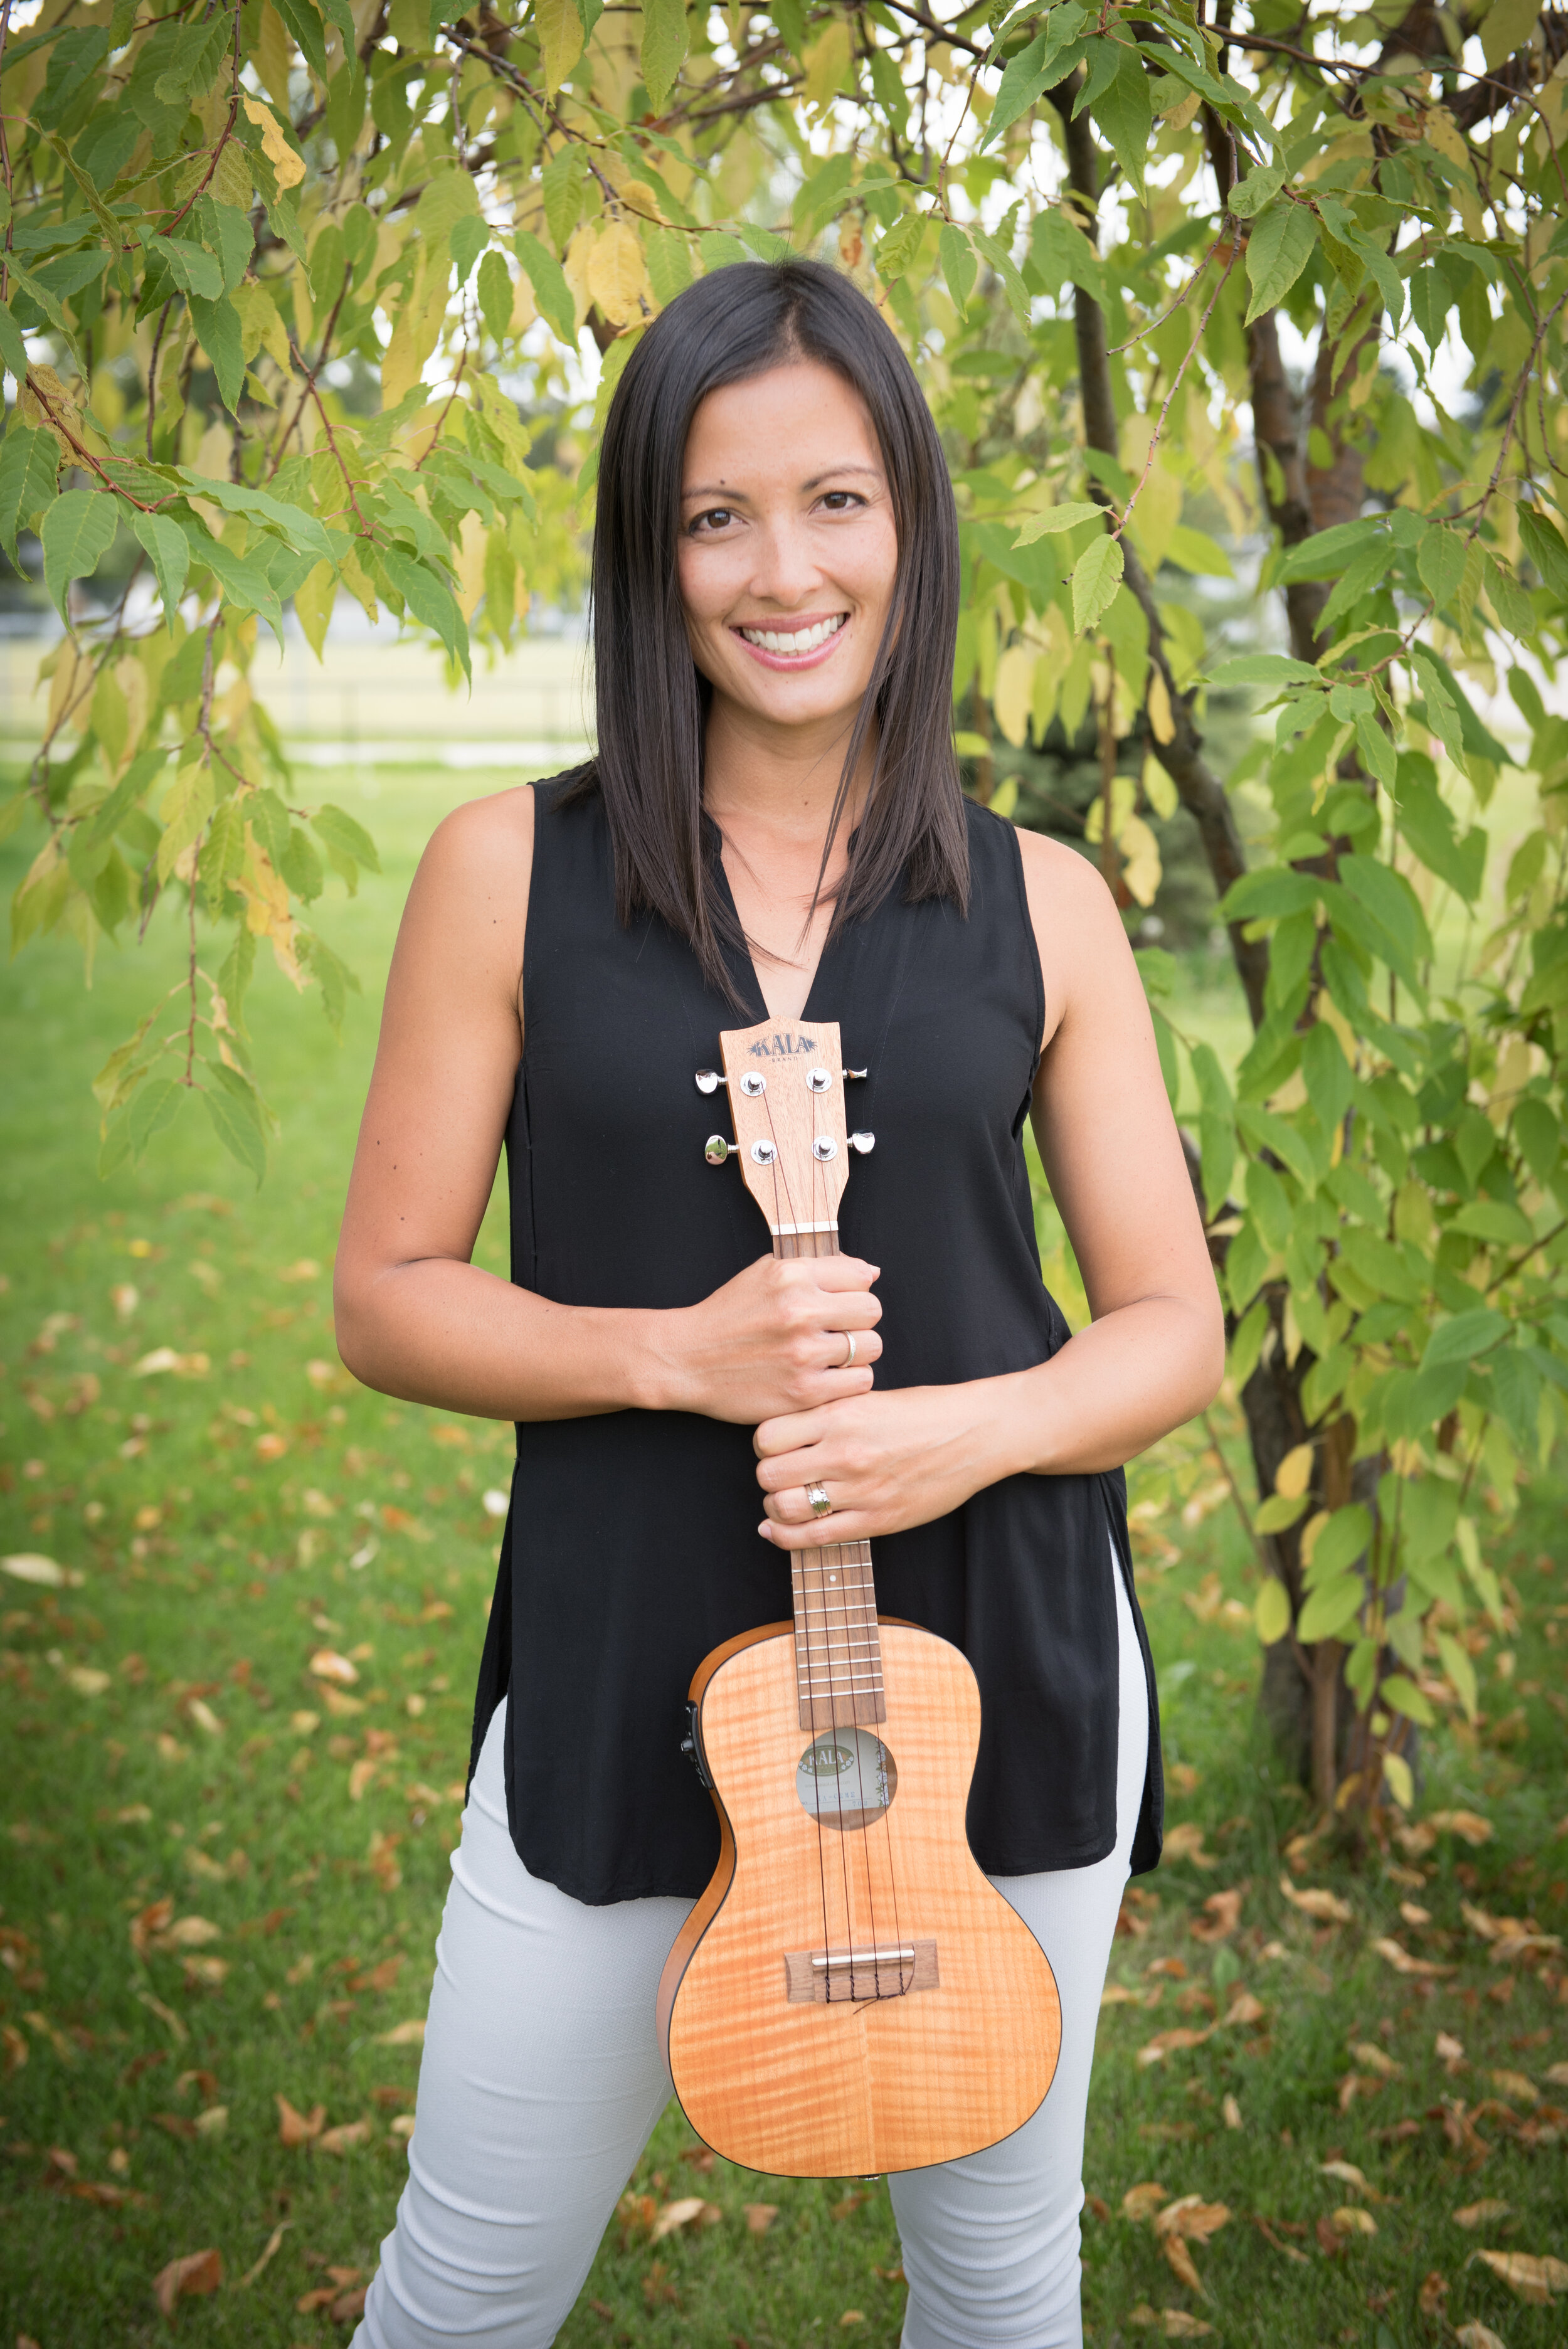 Ukulele has been hands down the BEST instrument I have used to build music literacy skills in the classroom. - - Christina O'Brien, Music Educator